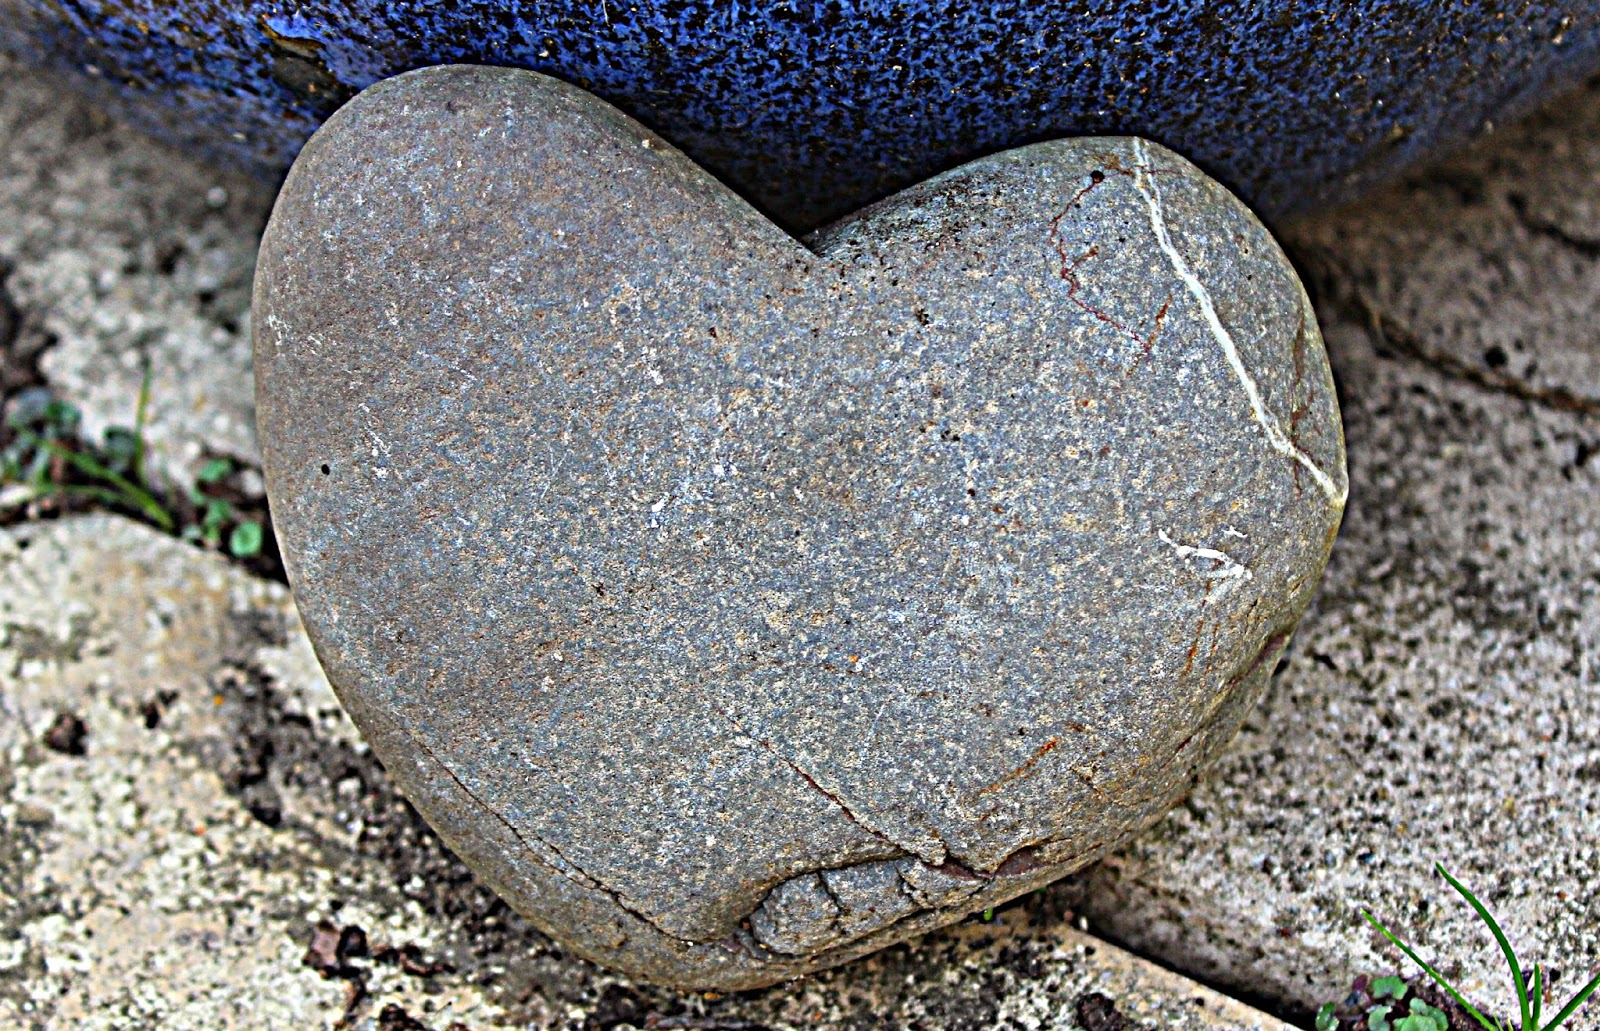 Project 365 #38 day 257 - Stone heart